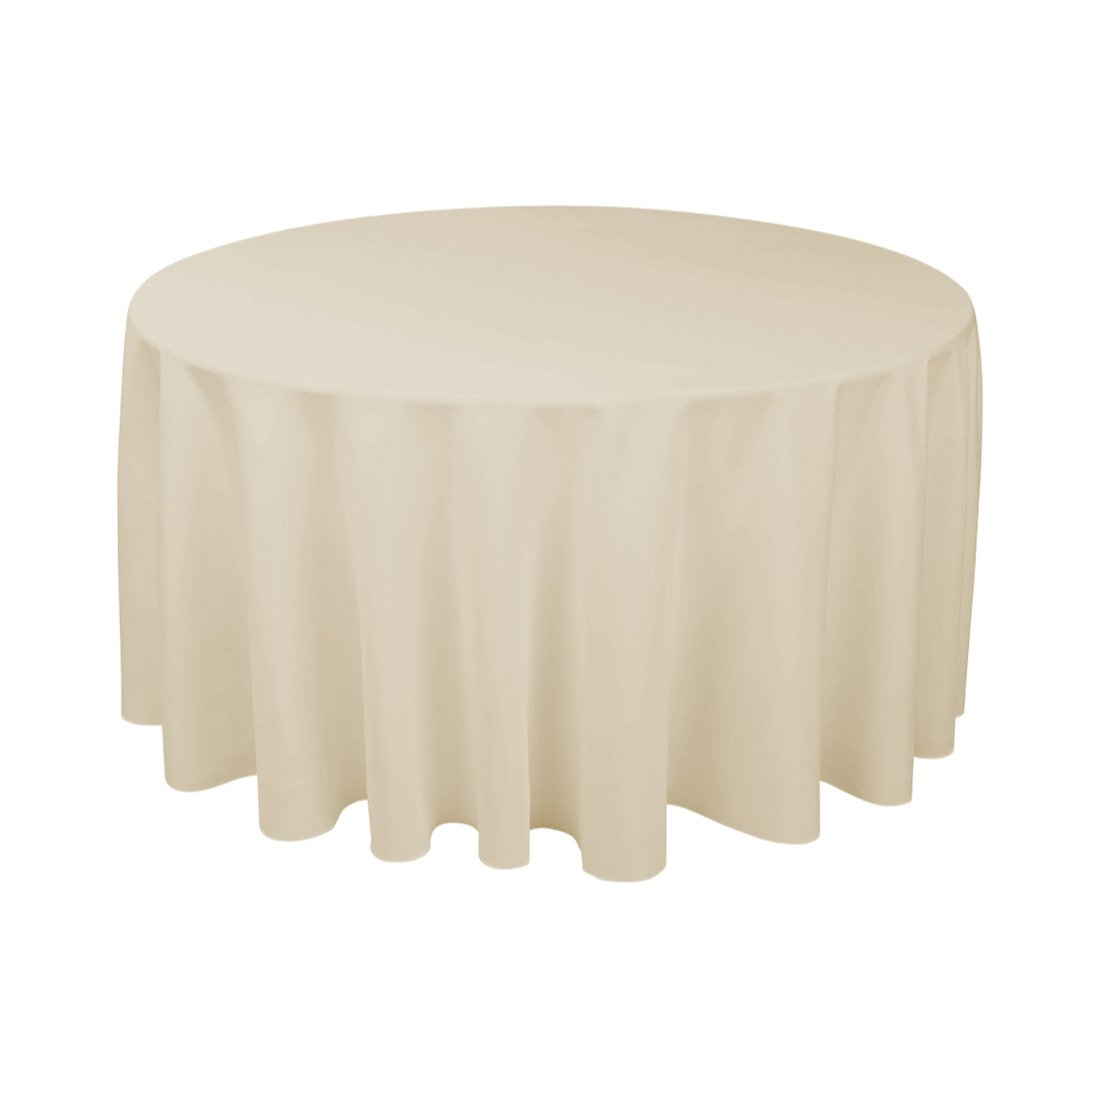 96 inch round tablecloth - Amazon Com Linentablecloth 120 Inch Round Polyester Tablecloth Beige Home Kitchen